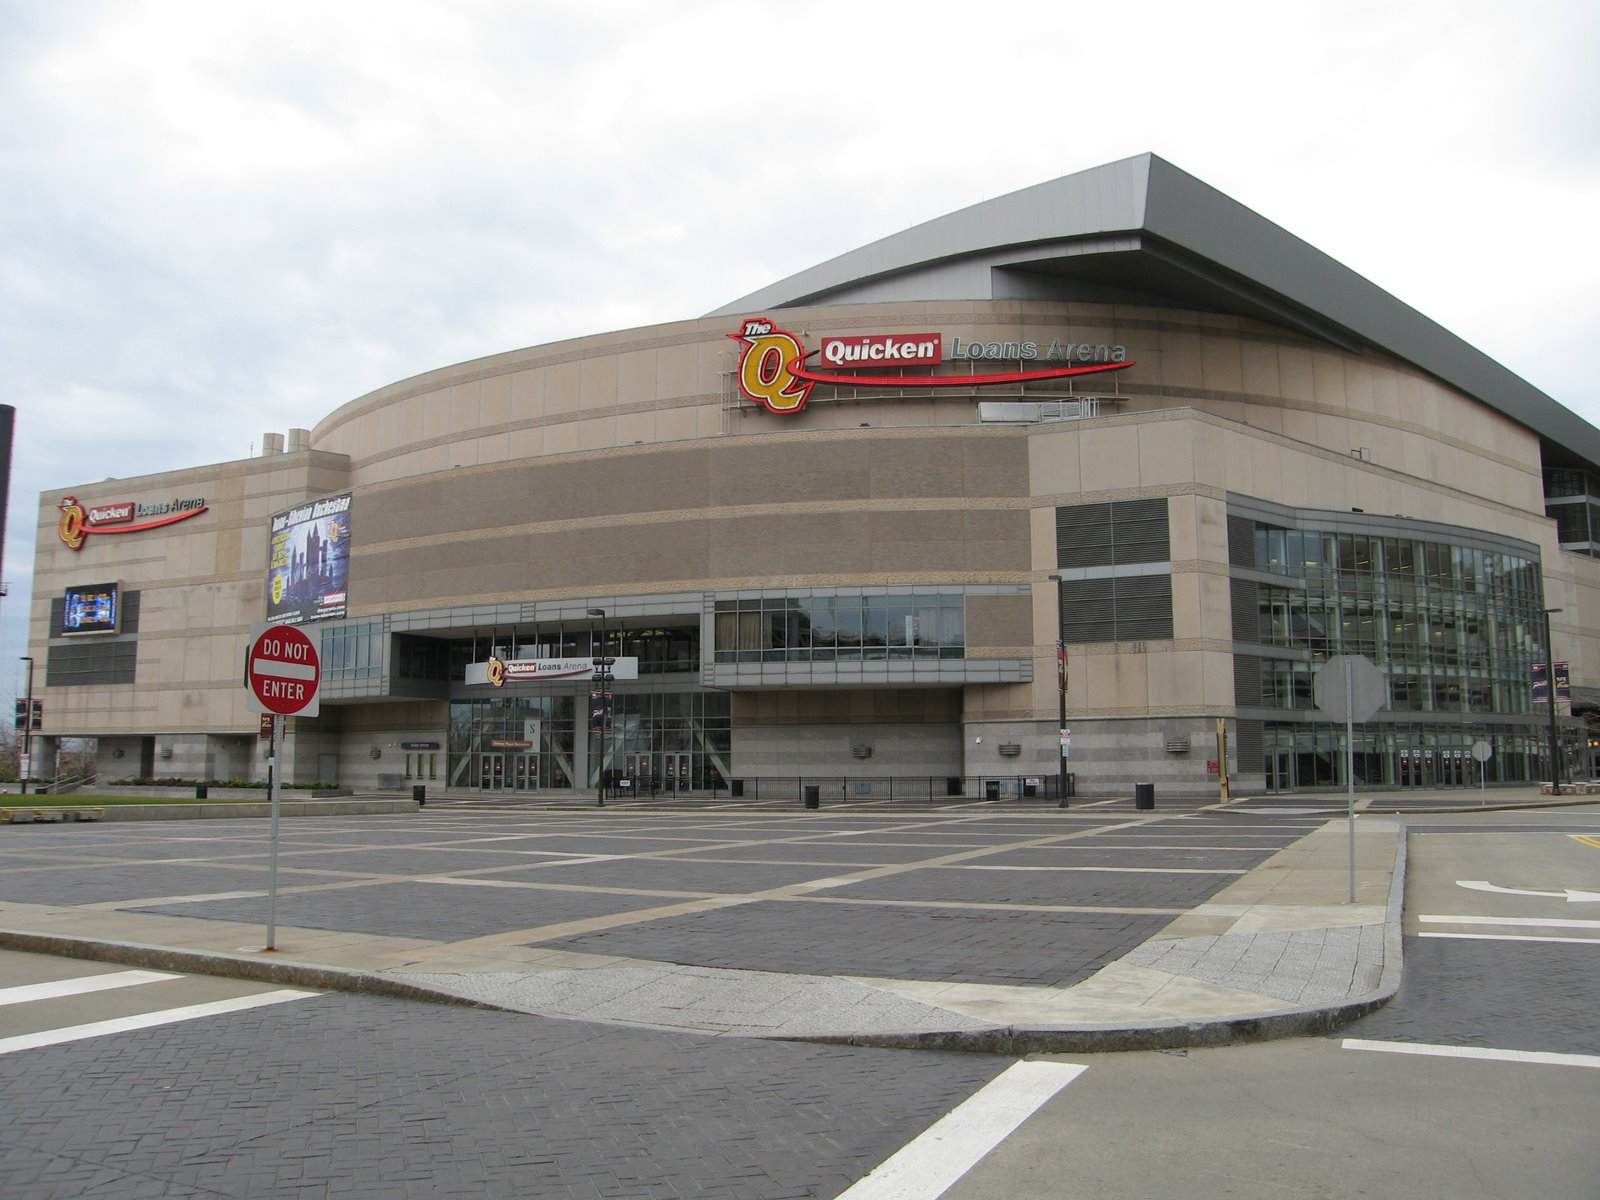 The arena was built in 1994.